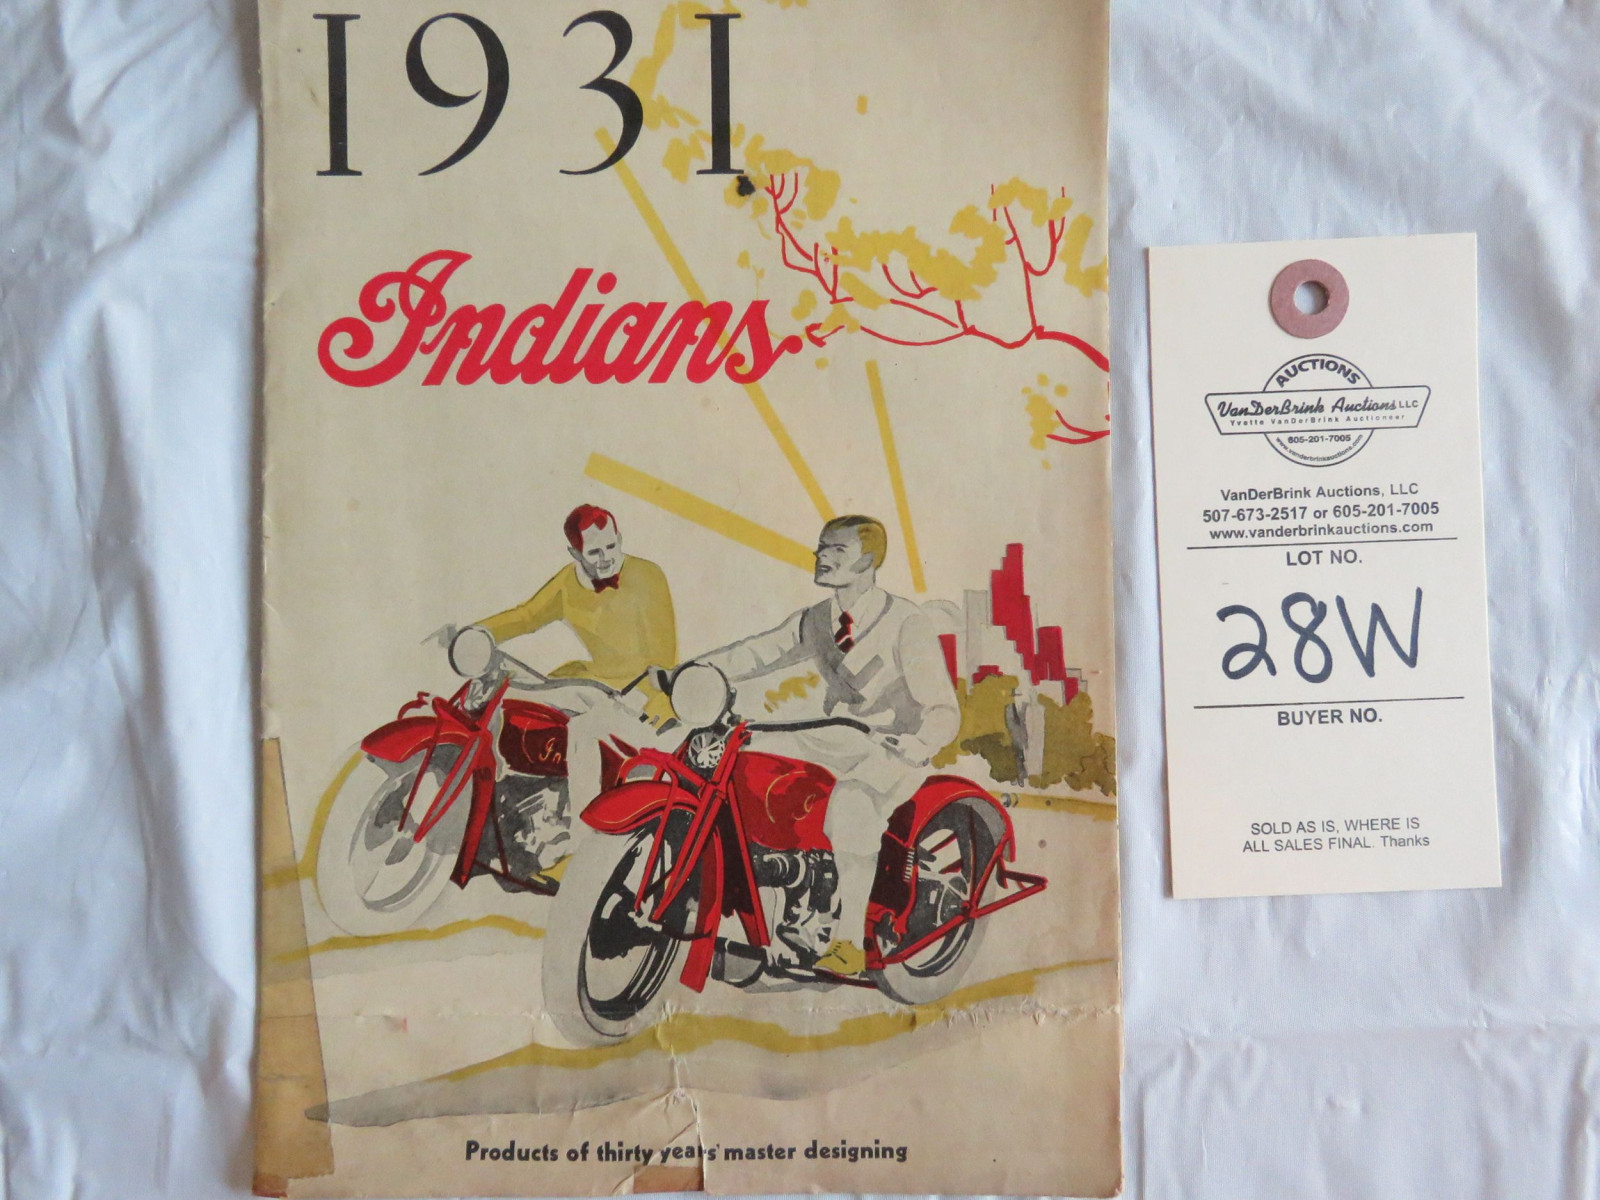 1931 Indian Motorcycles Brochure - Image 1